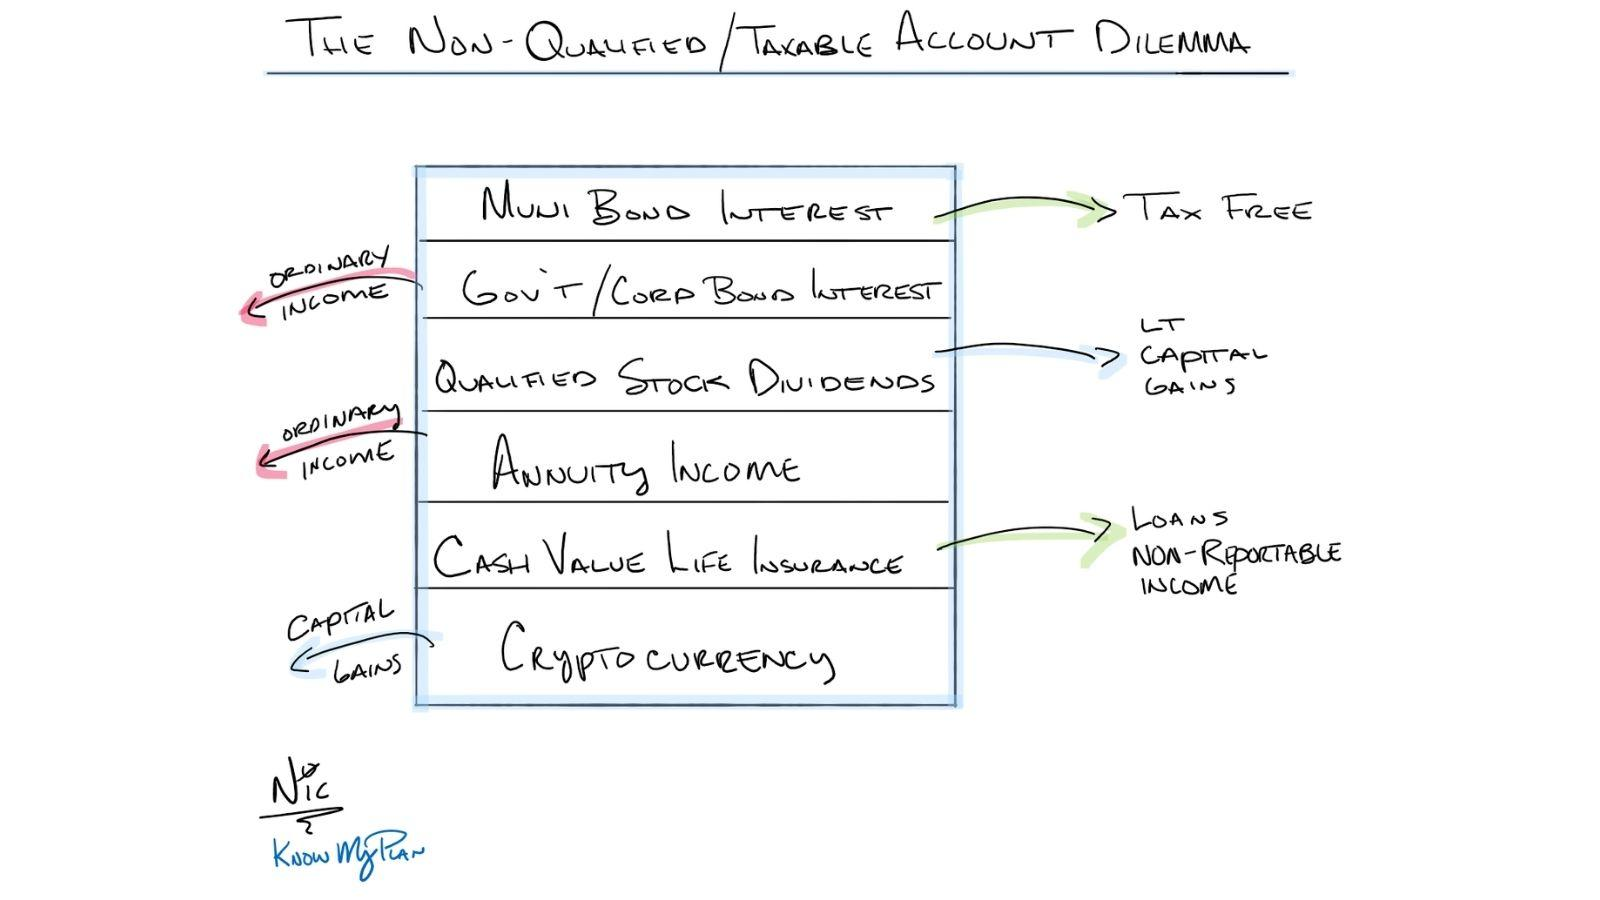 The Non-Qualified/Taxable Account Dilemma Thumbnail